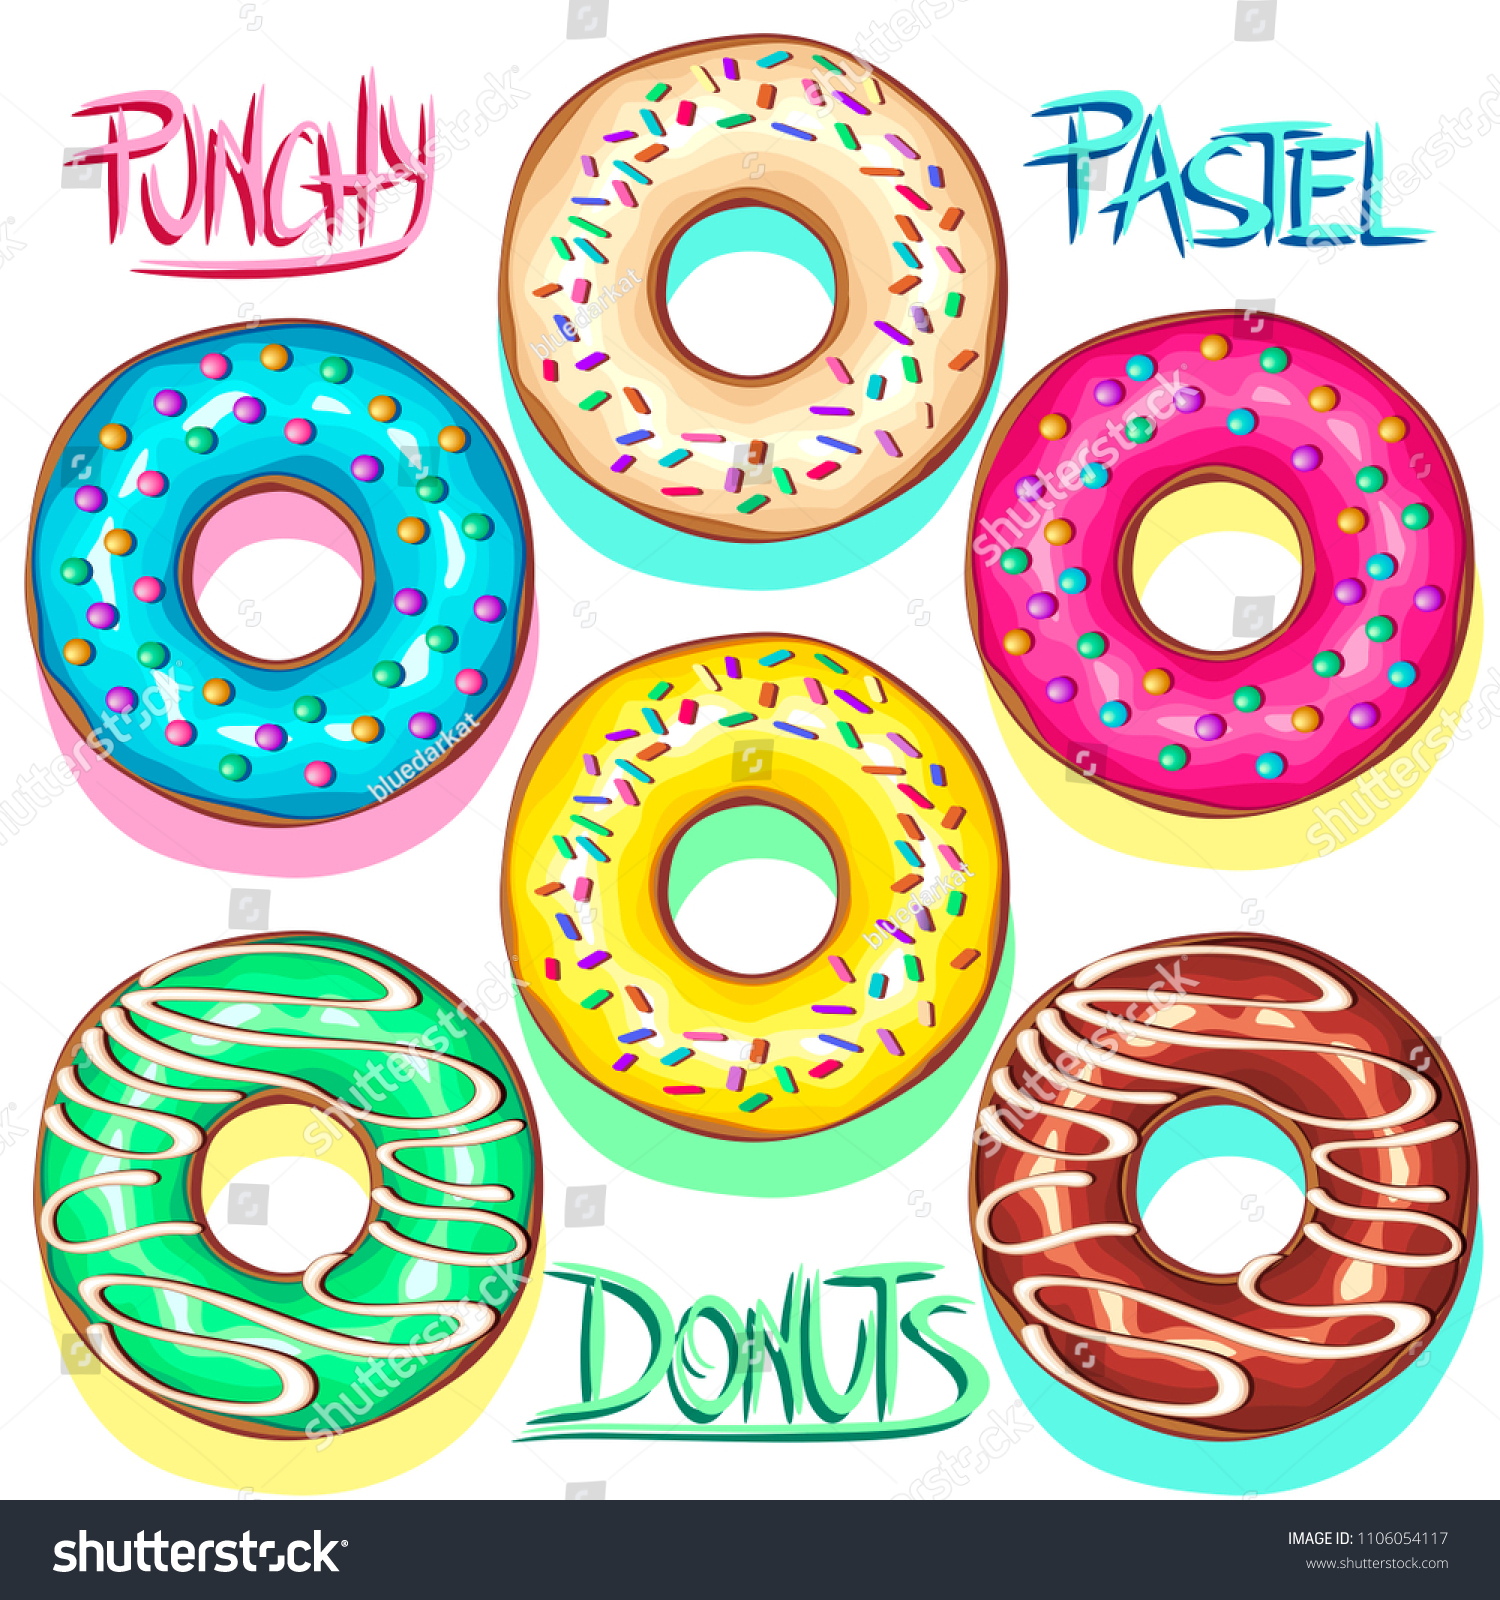 Set of Colorful Punchy Pastel Donuts, showcasing Color trends like Baby Blue, Yellow Mellow, Pink. Delicious and Creamy, and also with Chocolate